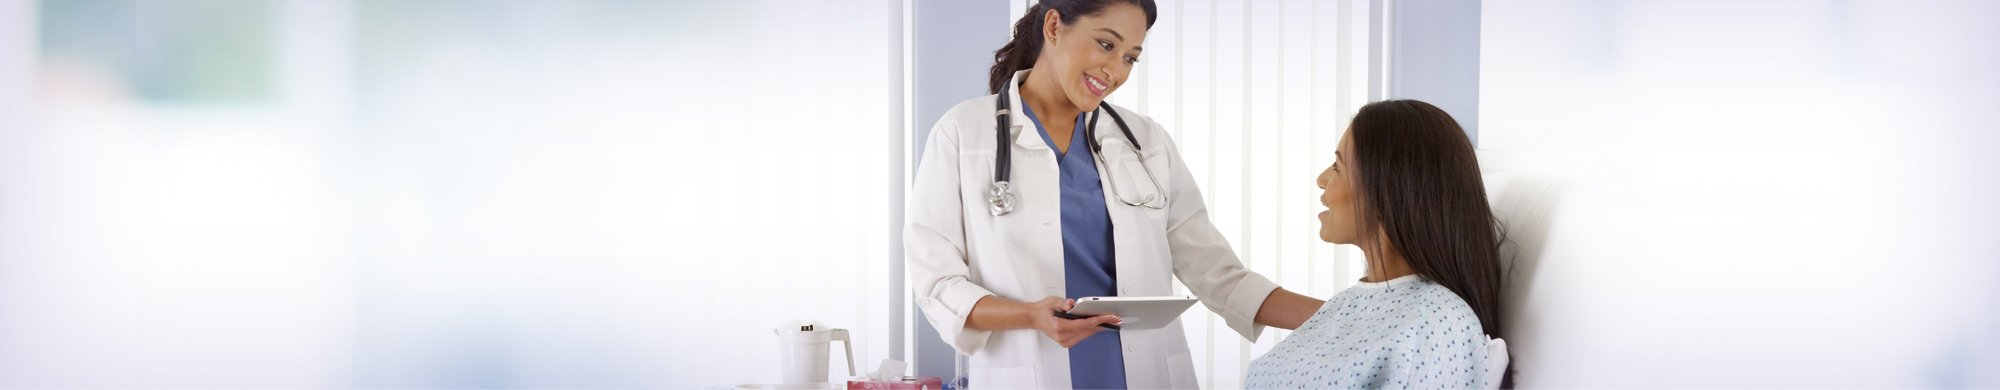 Medical Gown Rental and Laundry Services | Healthcare Patient Uniforms